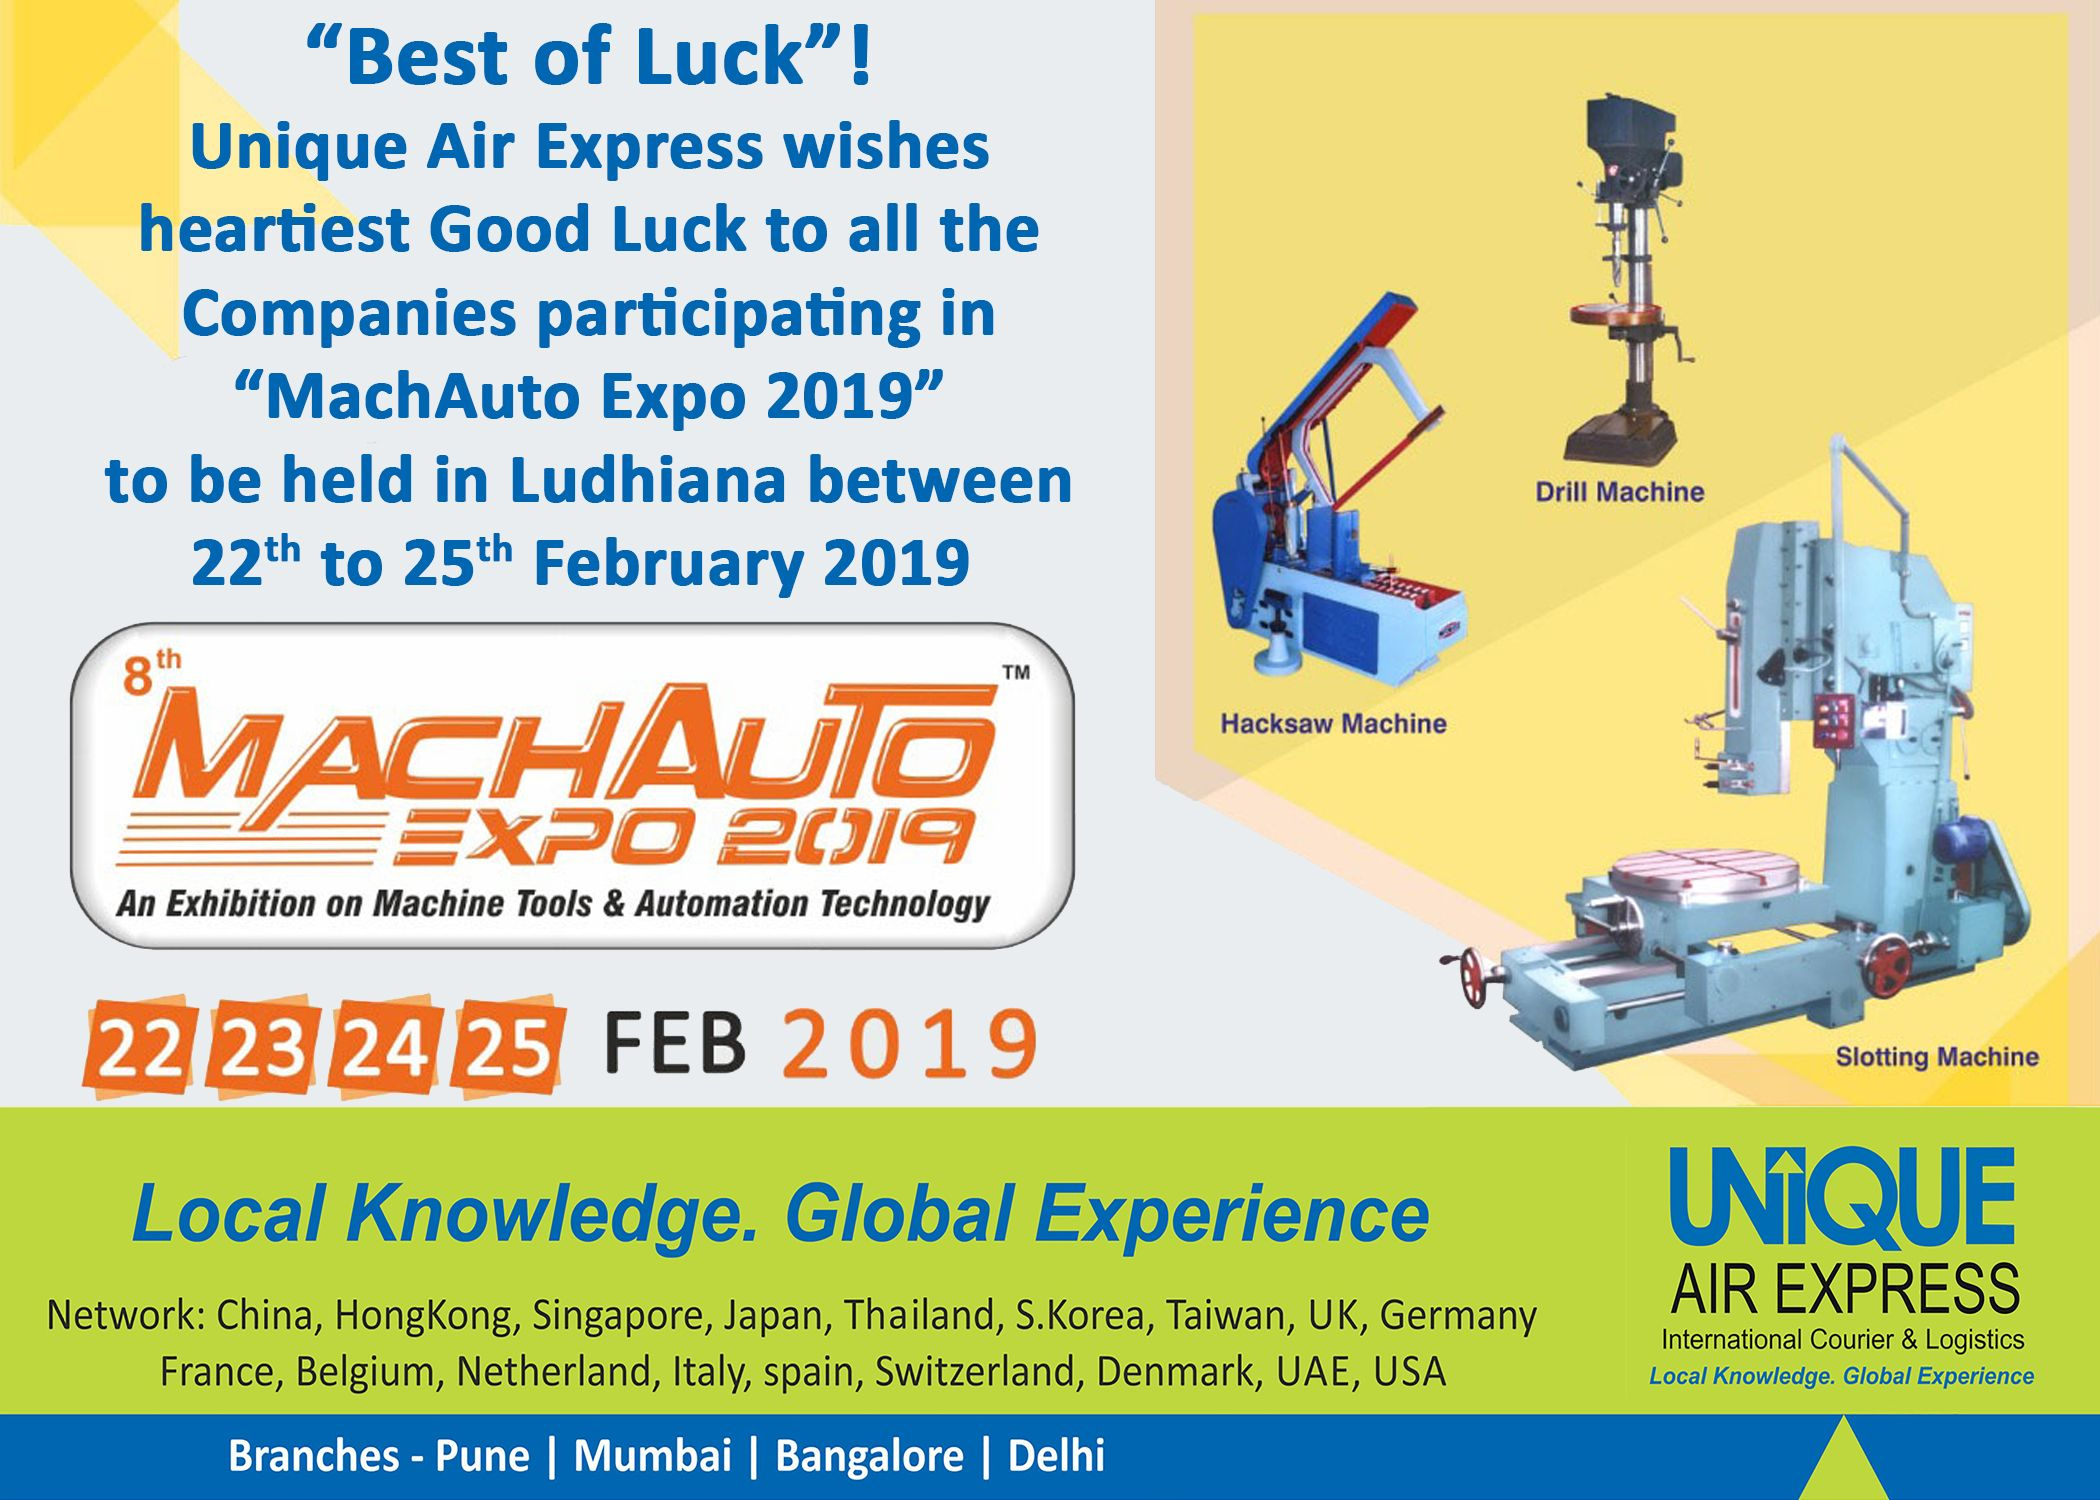 We Wish Good #Luck to The Companies Participating in